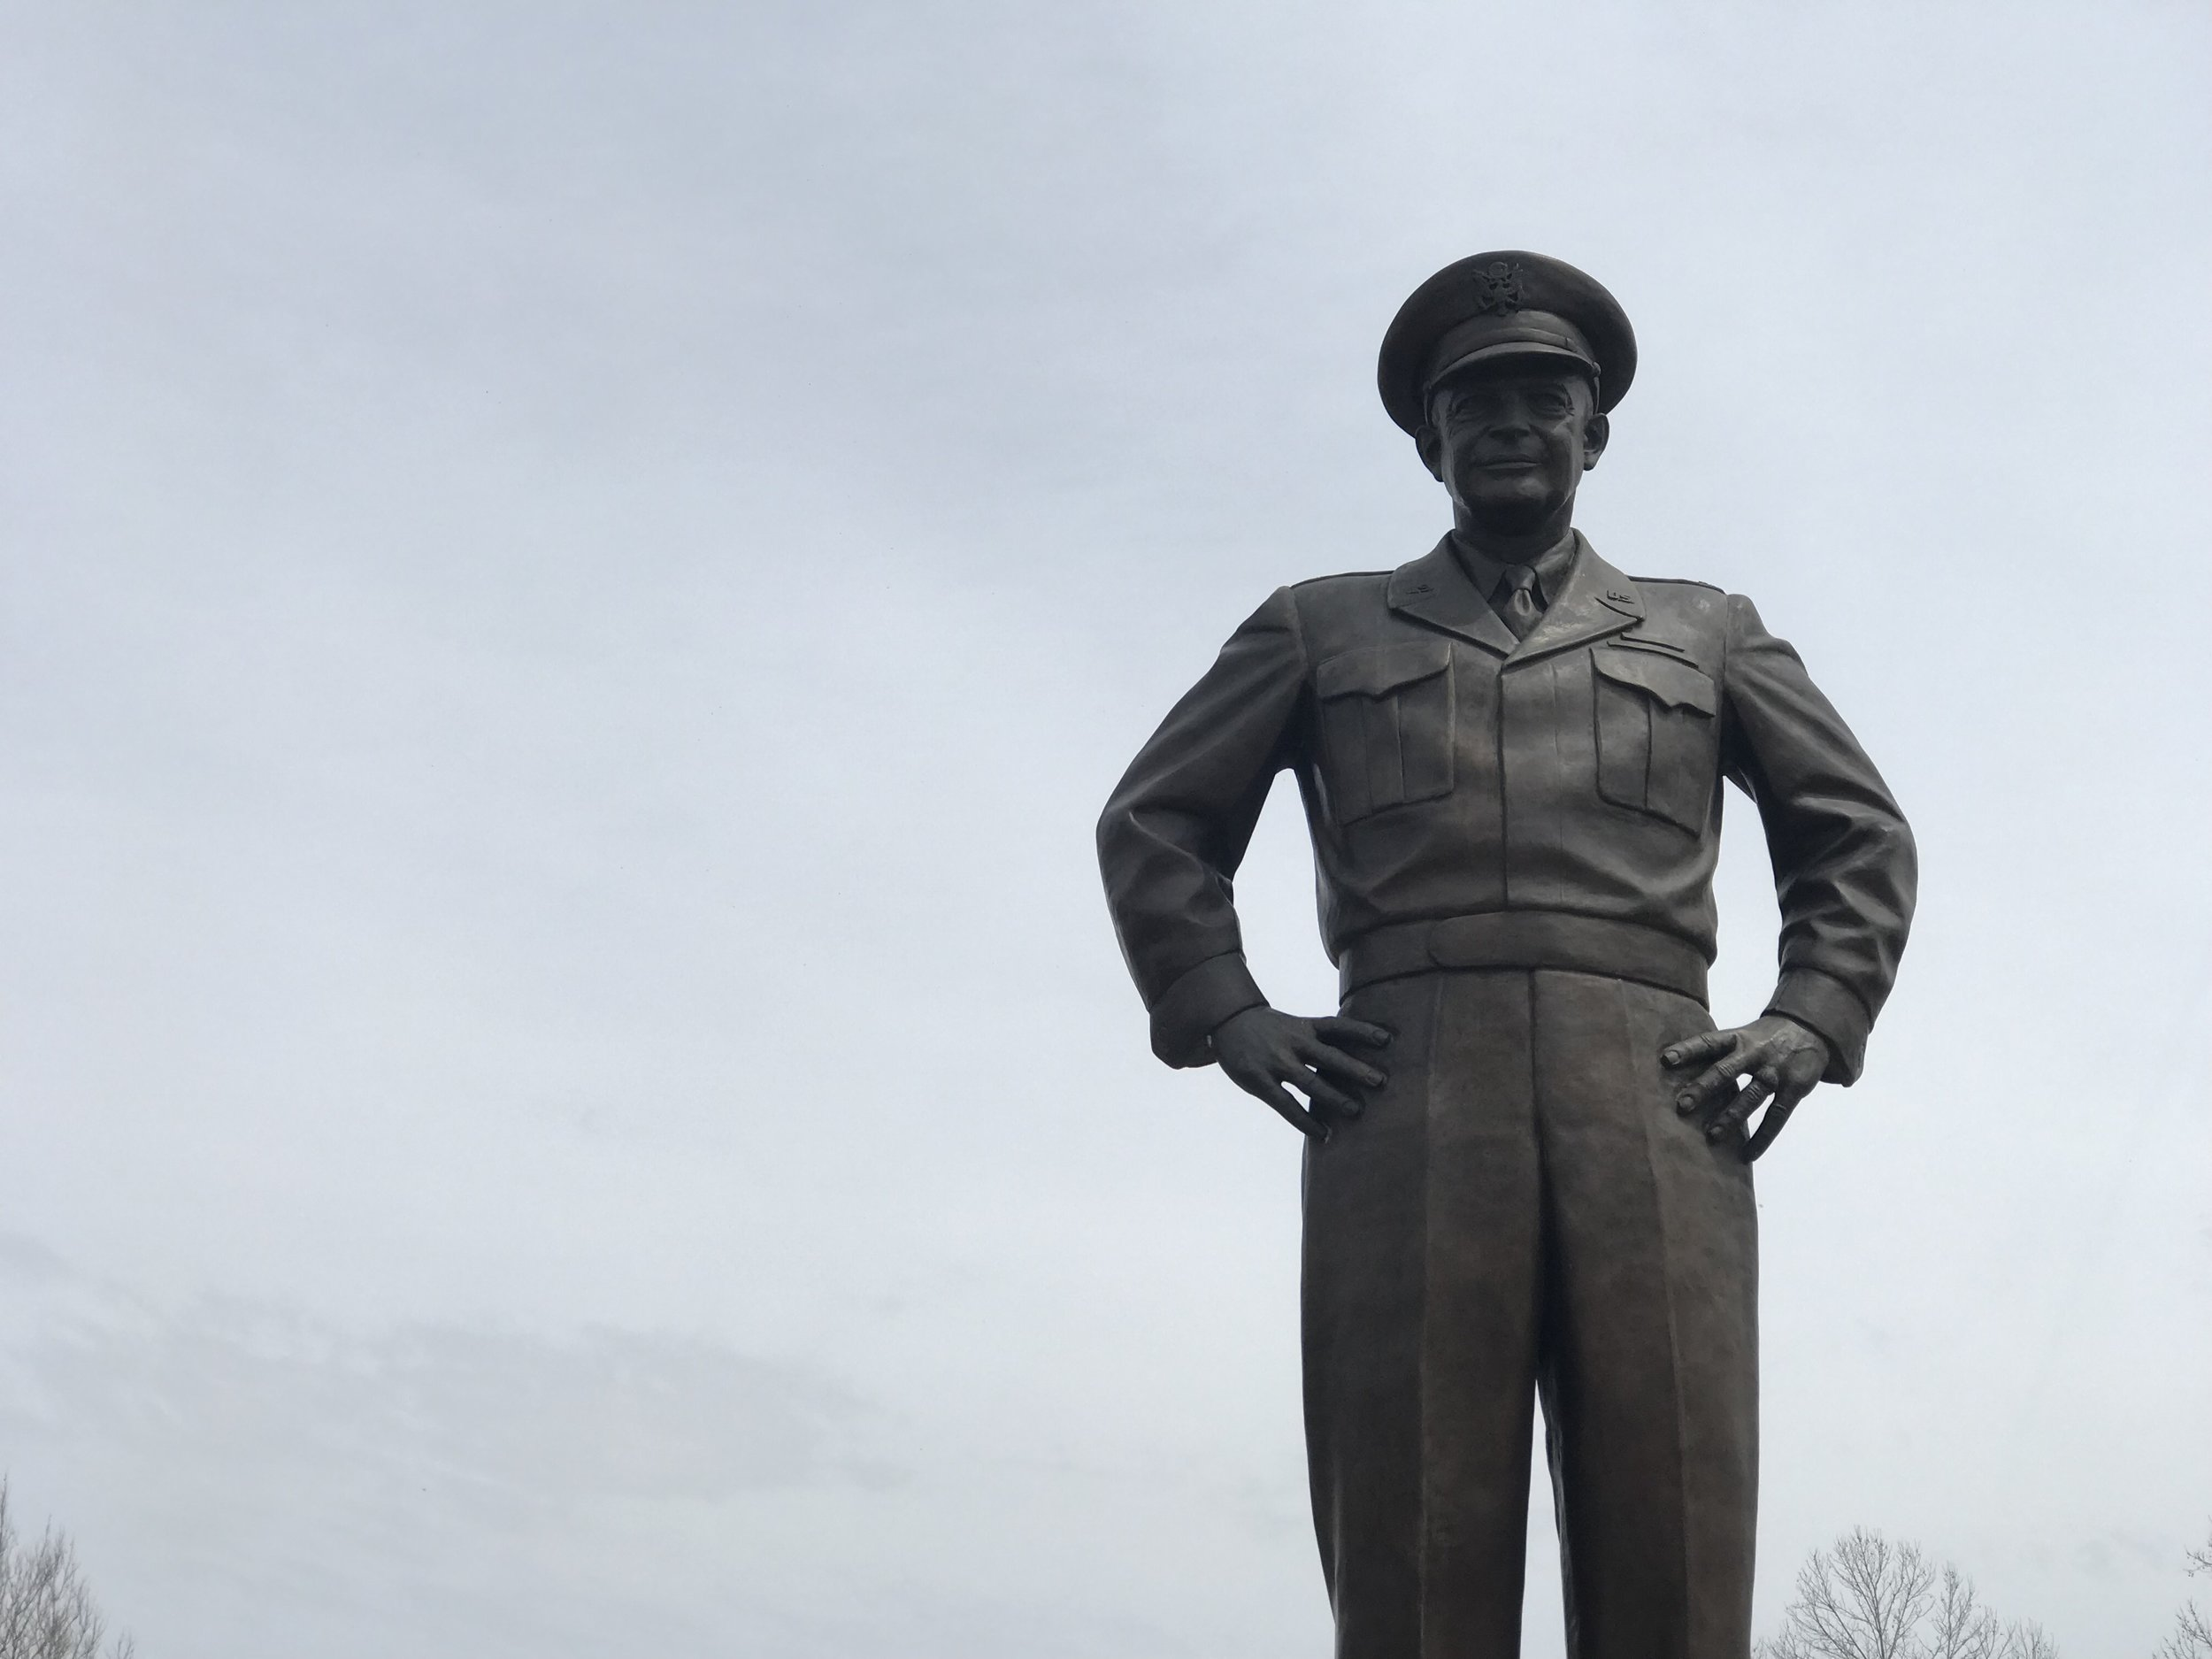 Gen. Dwight D. Eisenhower looms over the plaza at the Eisenhower Presidential Library and Museum in Abilene, Kansas.